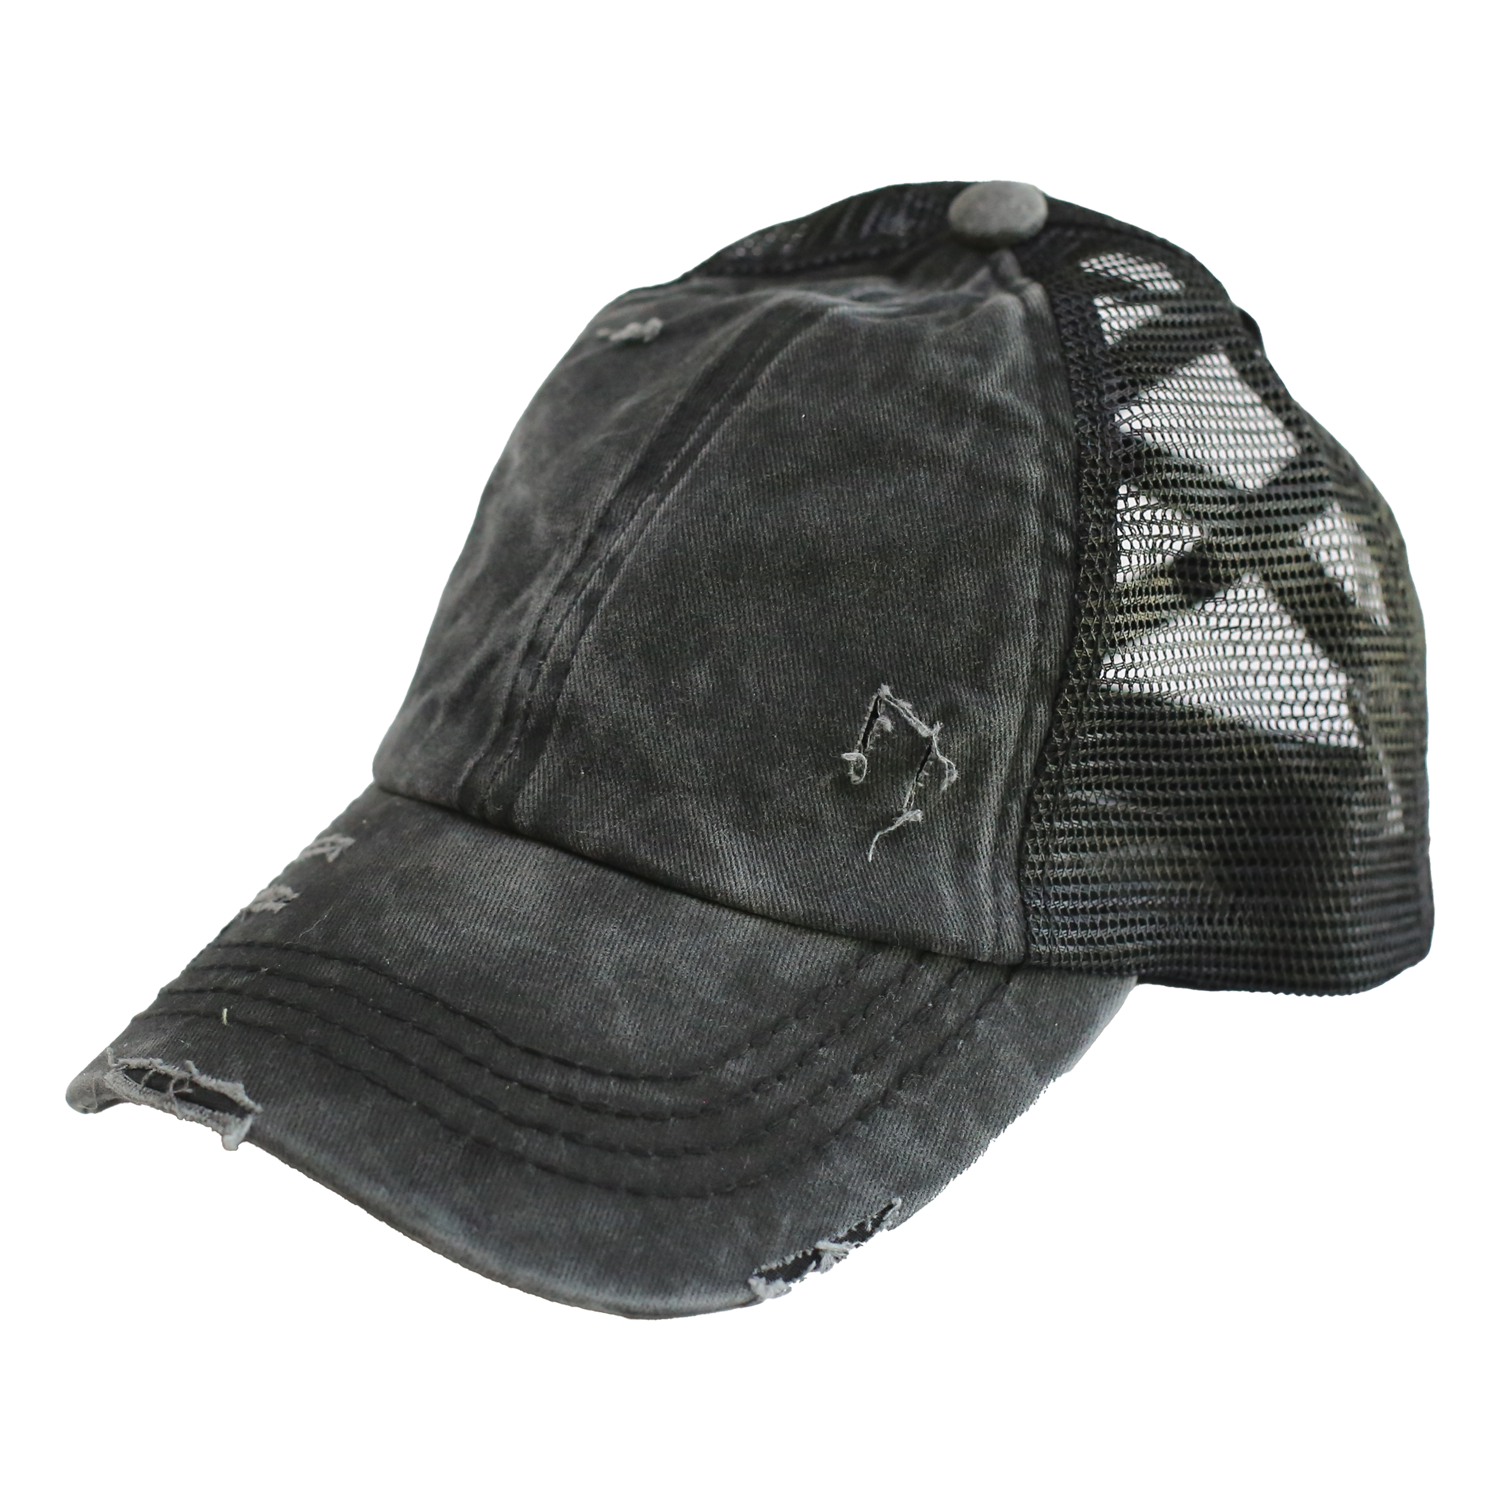 BT-780 C.C Criss Cross Pony Cap BLACK/BLACK